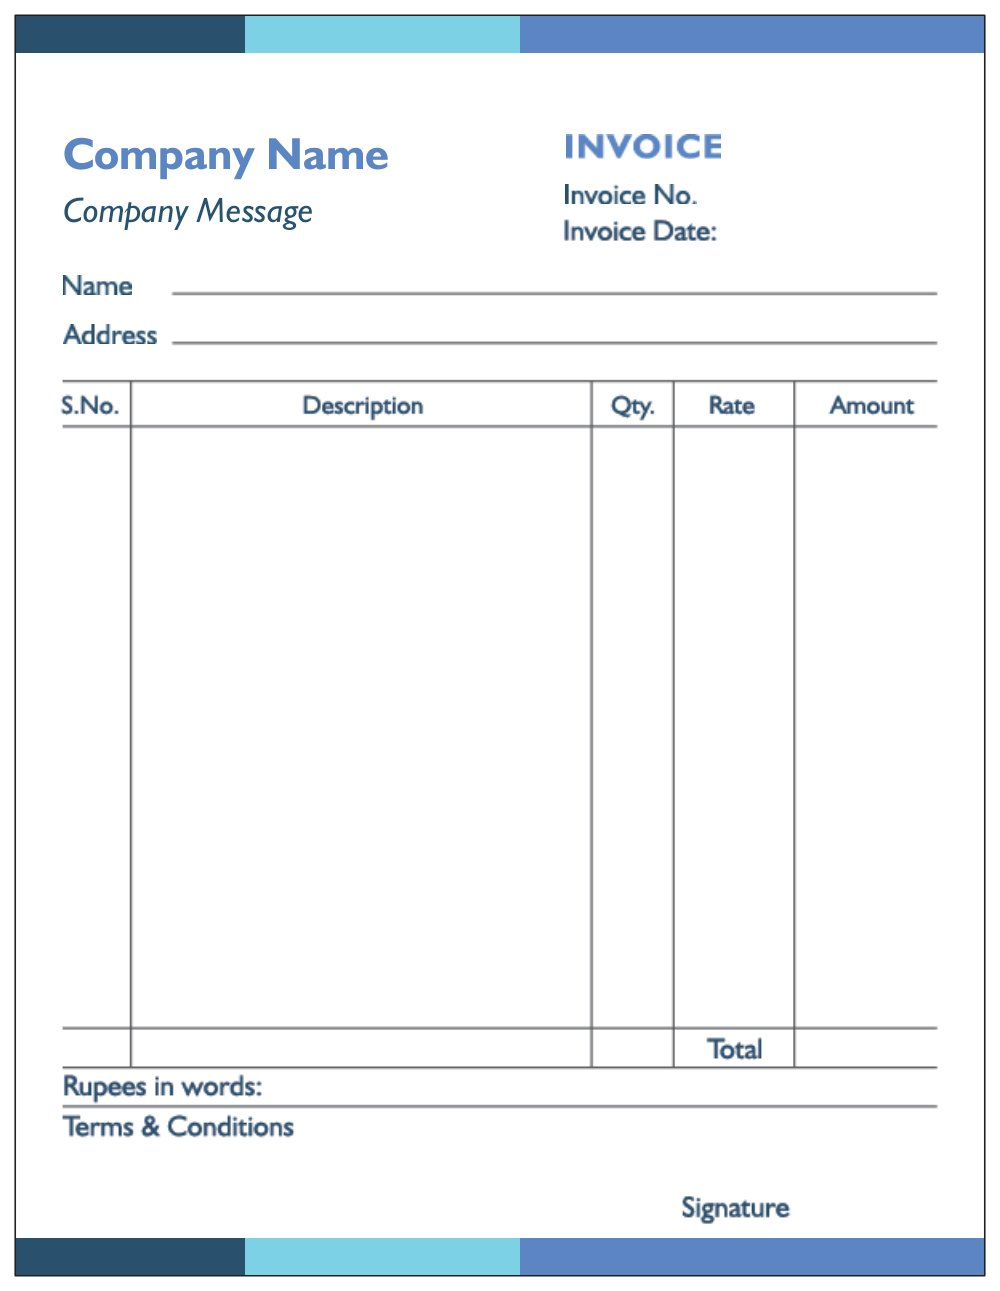 Print Custom Bill Book Receipt Books Invoice Books And Notepads With Logo At Vistaprint In Microsoft Word Invoice Template Invoice Template Word Invoice Design Template